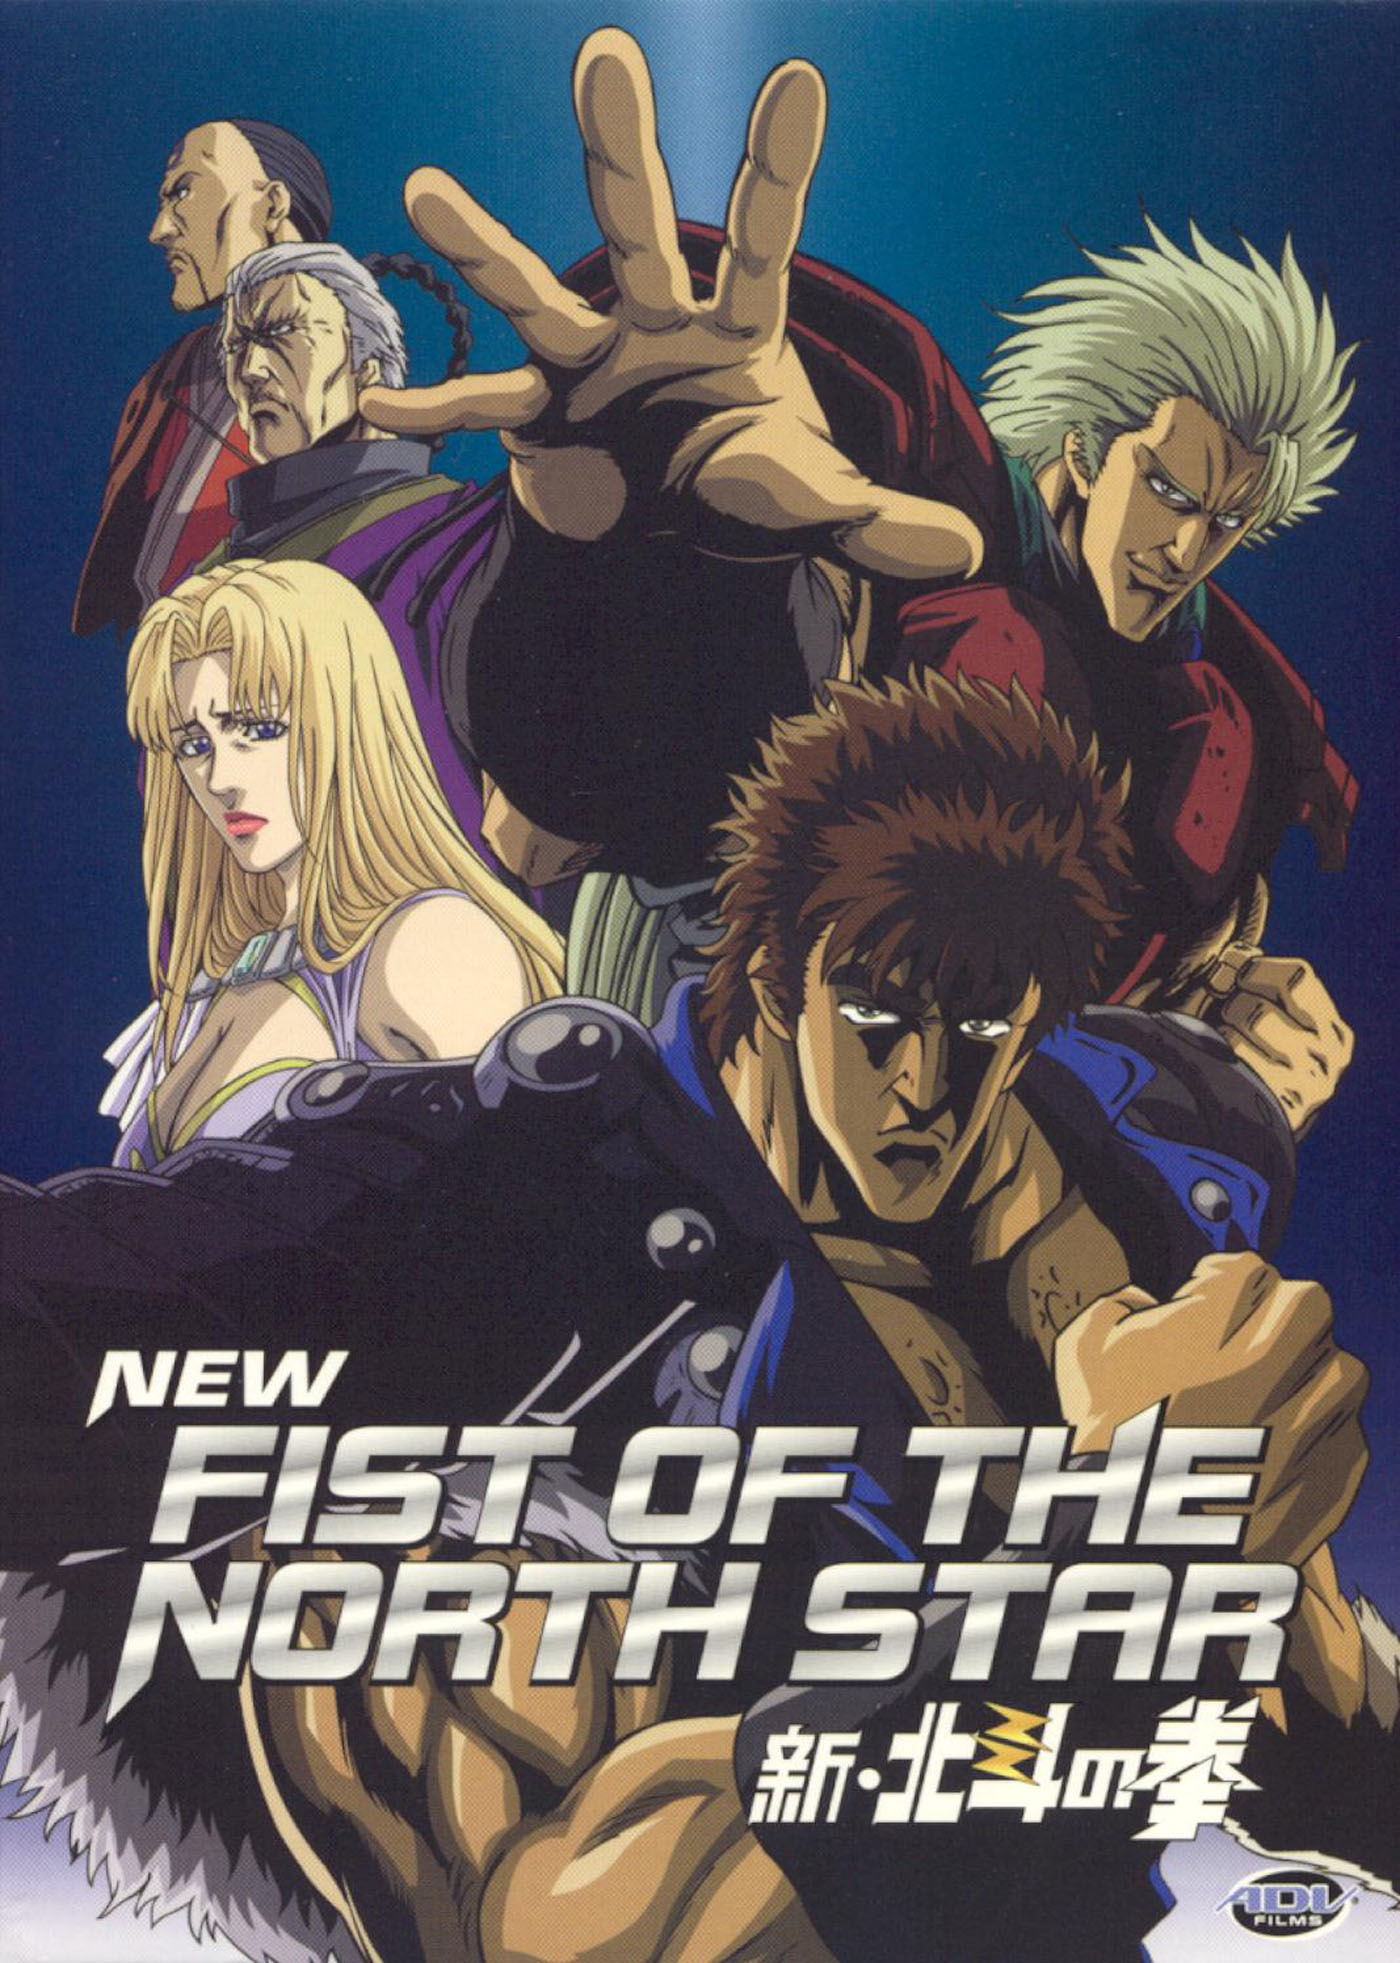 New Fist of the North Star, Vol. 1: The Cursed City